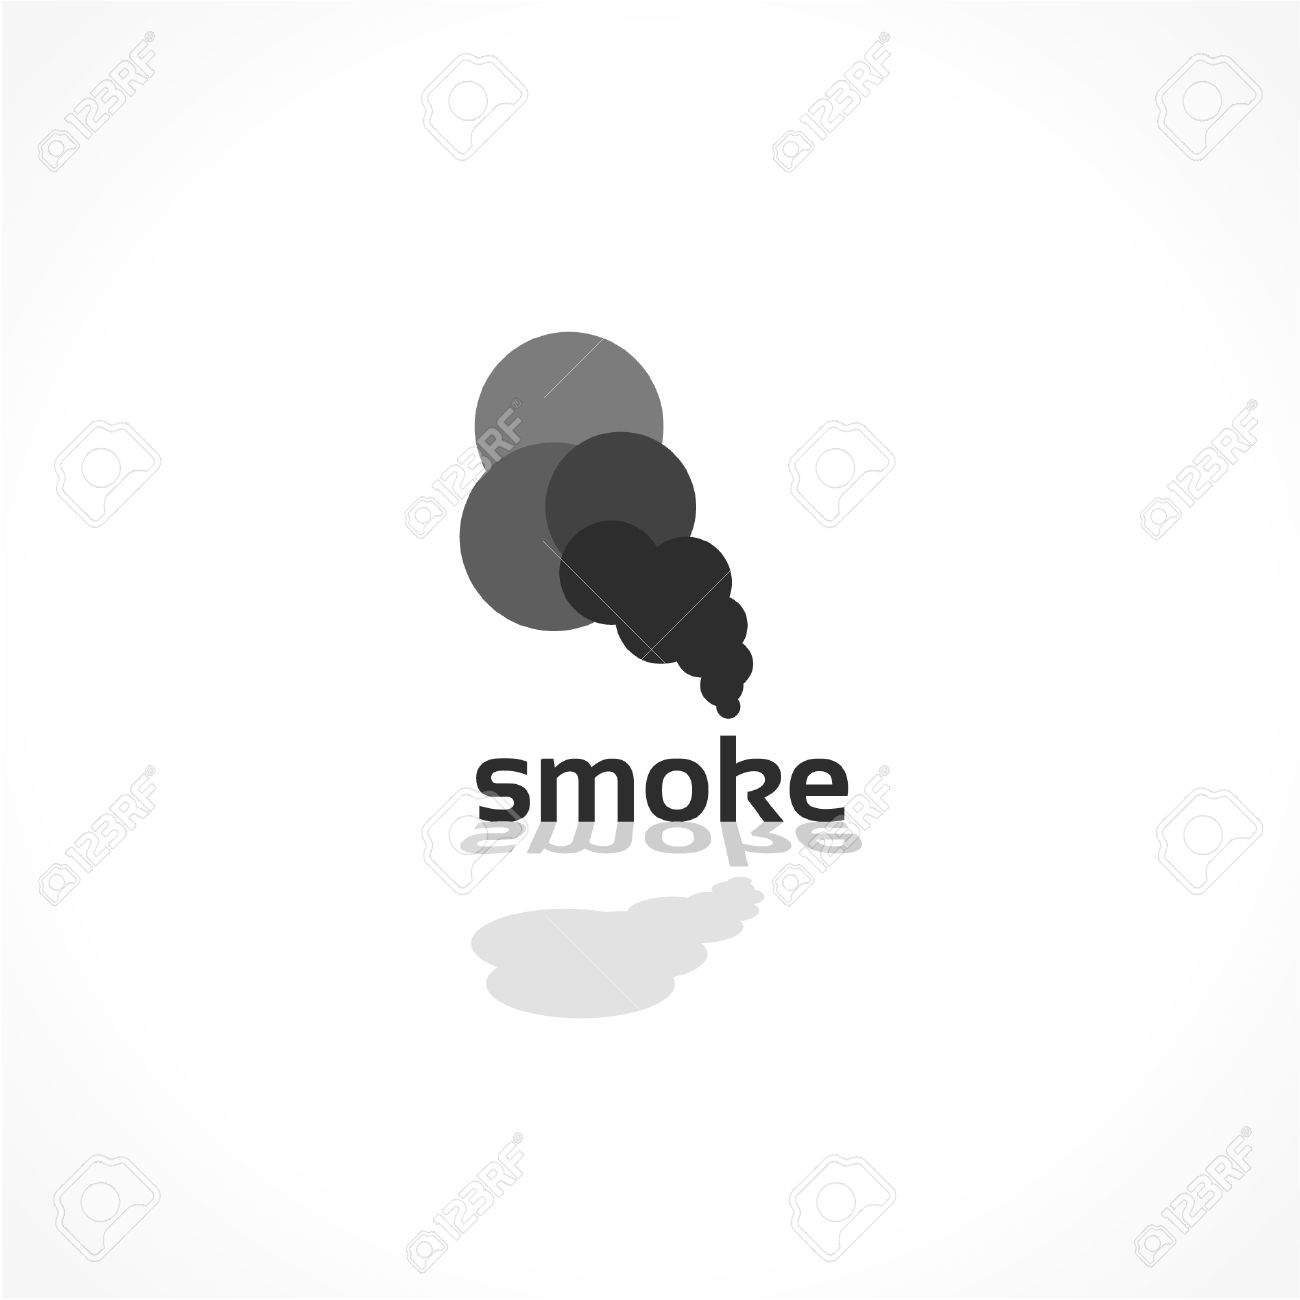 smoke vector icon abstract background design royalty free cliparts rh 123rf com vector smoker vector smoke hollow grill